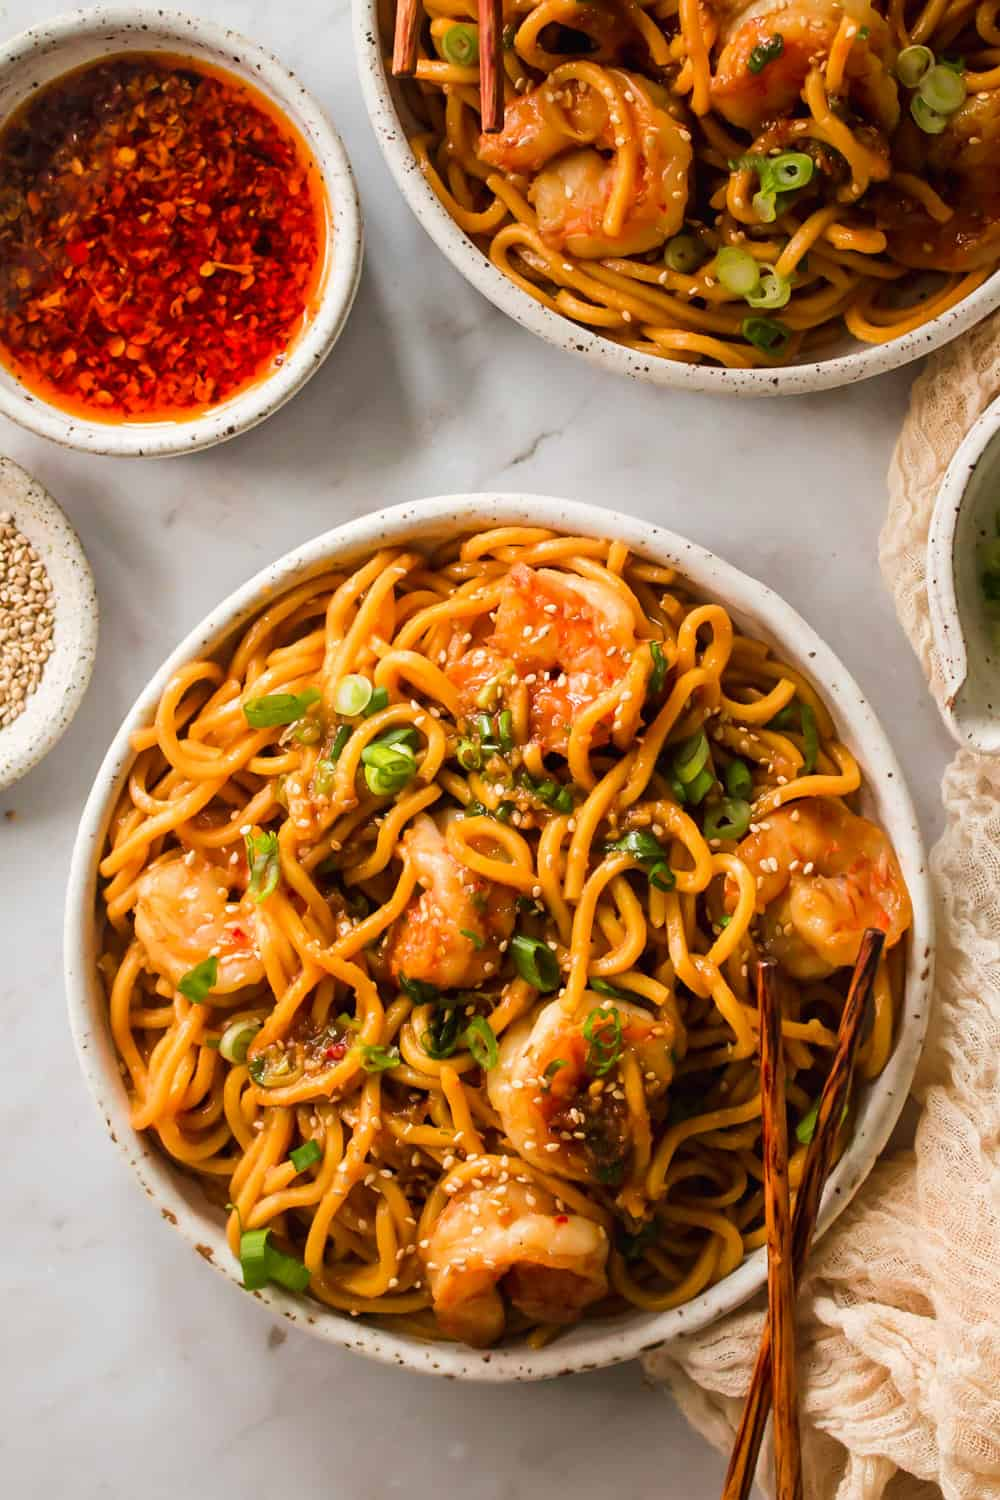 White bowl filled with yellow noodles, shrimp, and green onions. Small bowl with spicy sauce on the side.